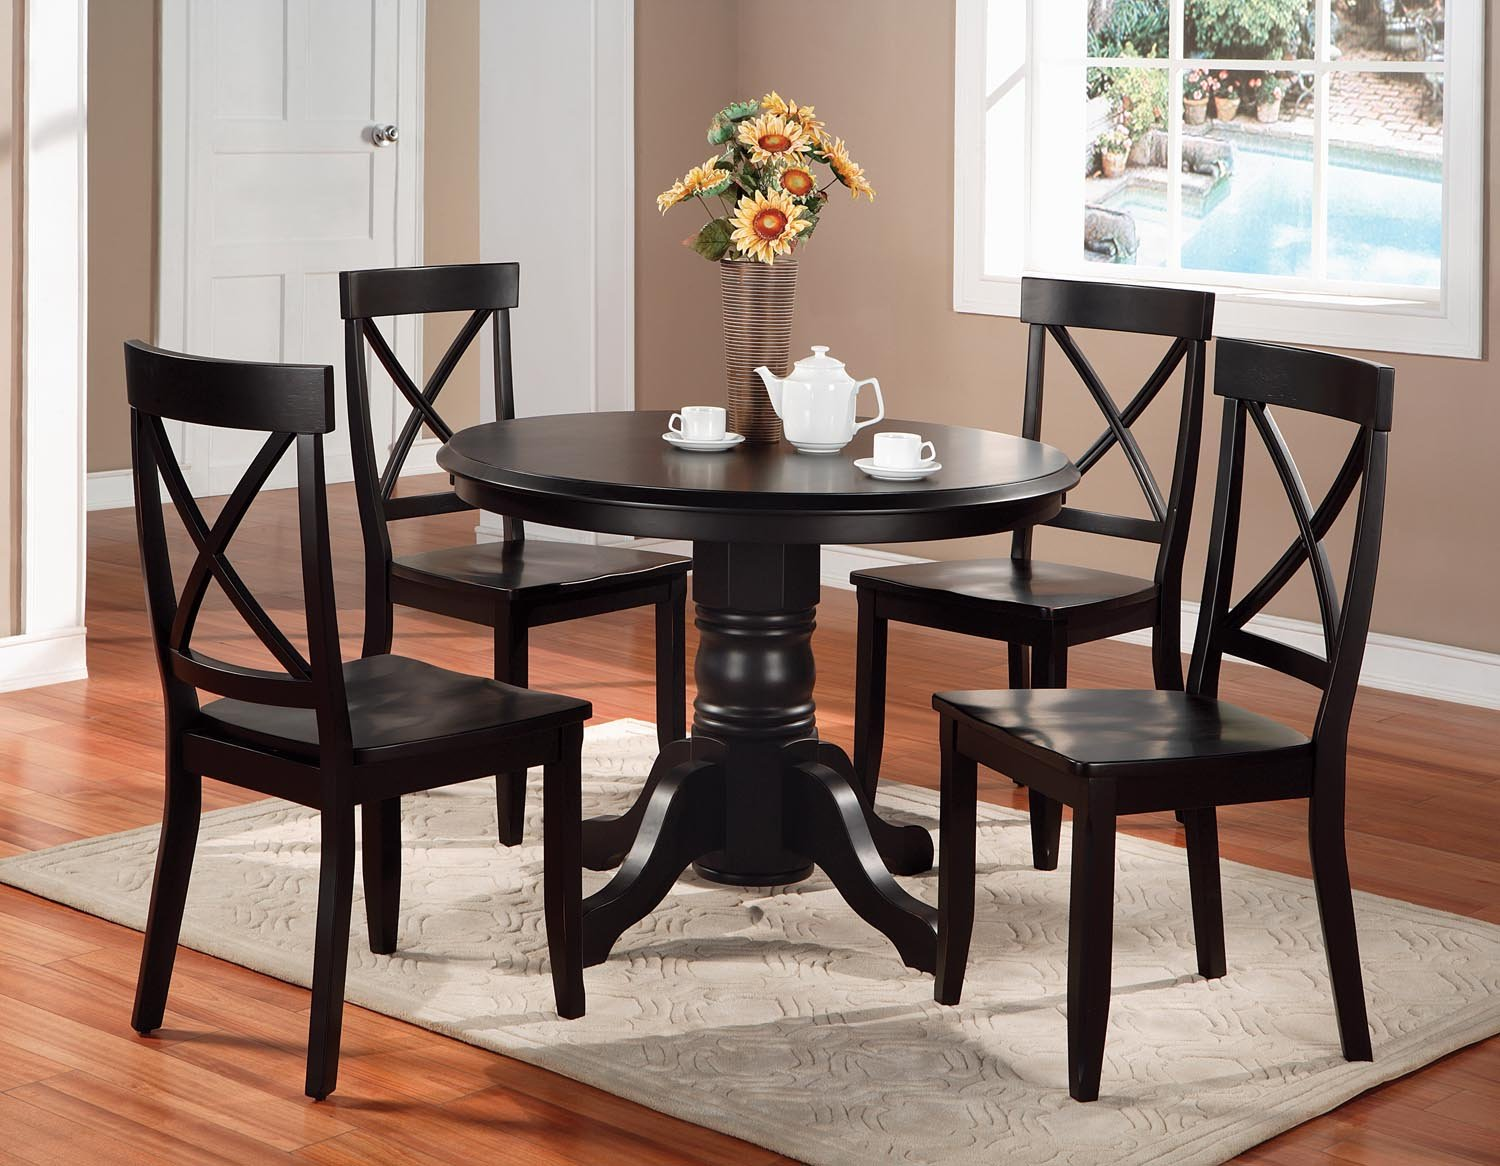 Amazon.com: Home Styles 5178-30 Round Pedestal Dining Table, Black ...